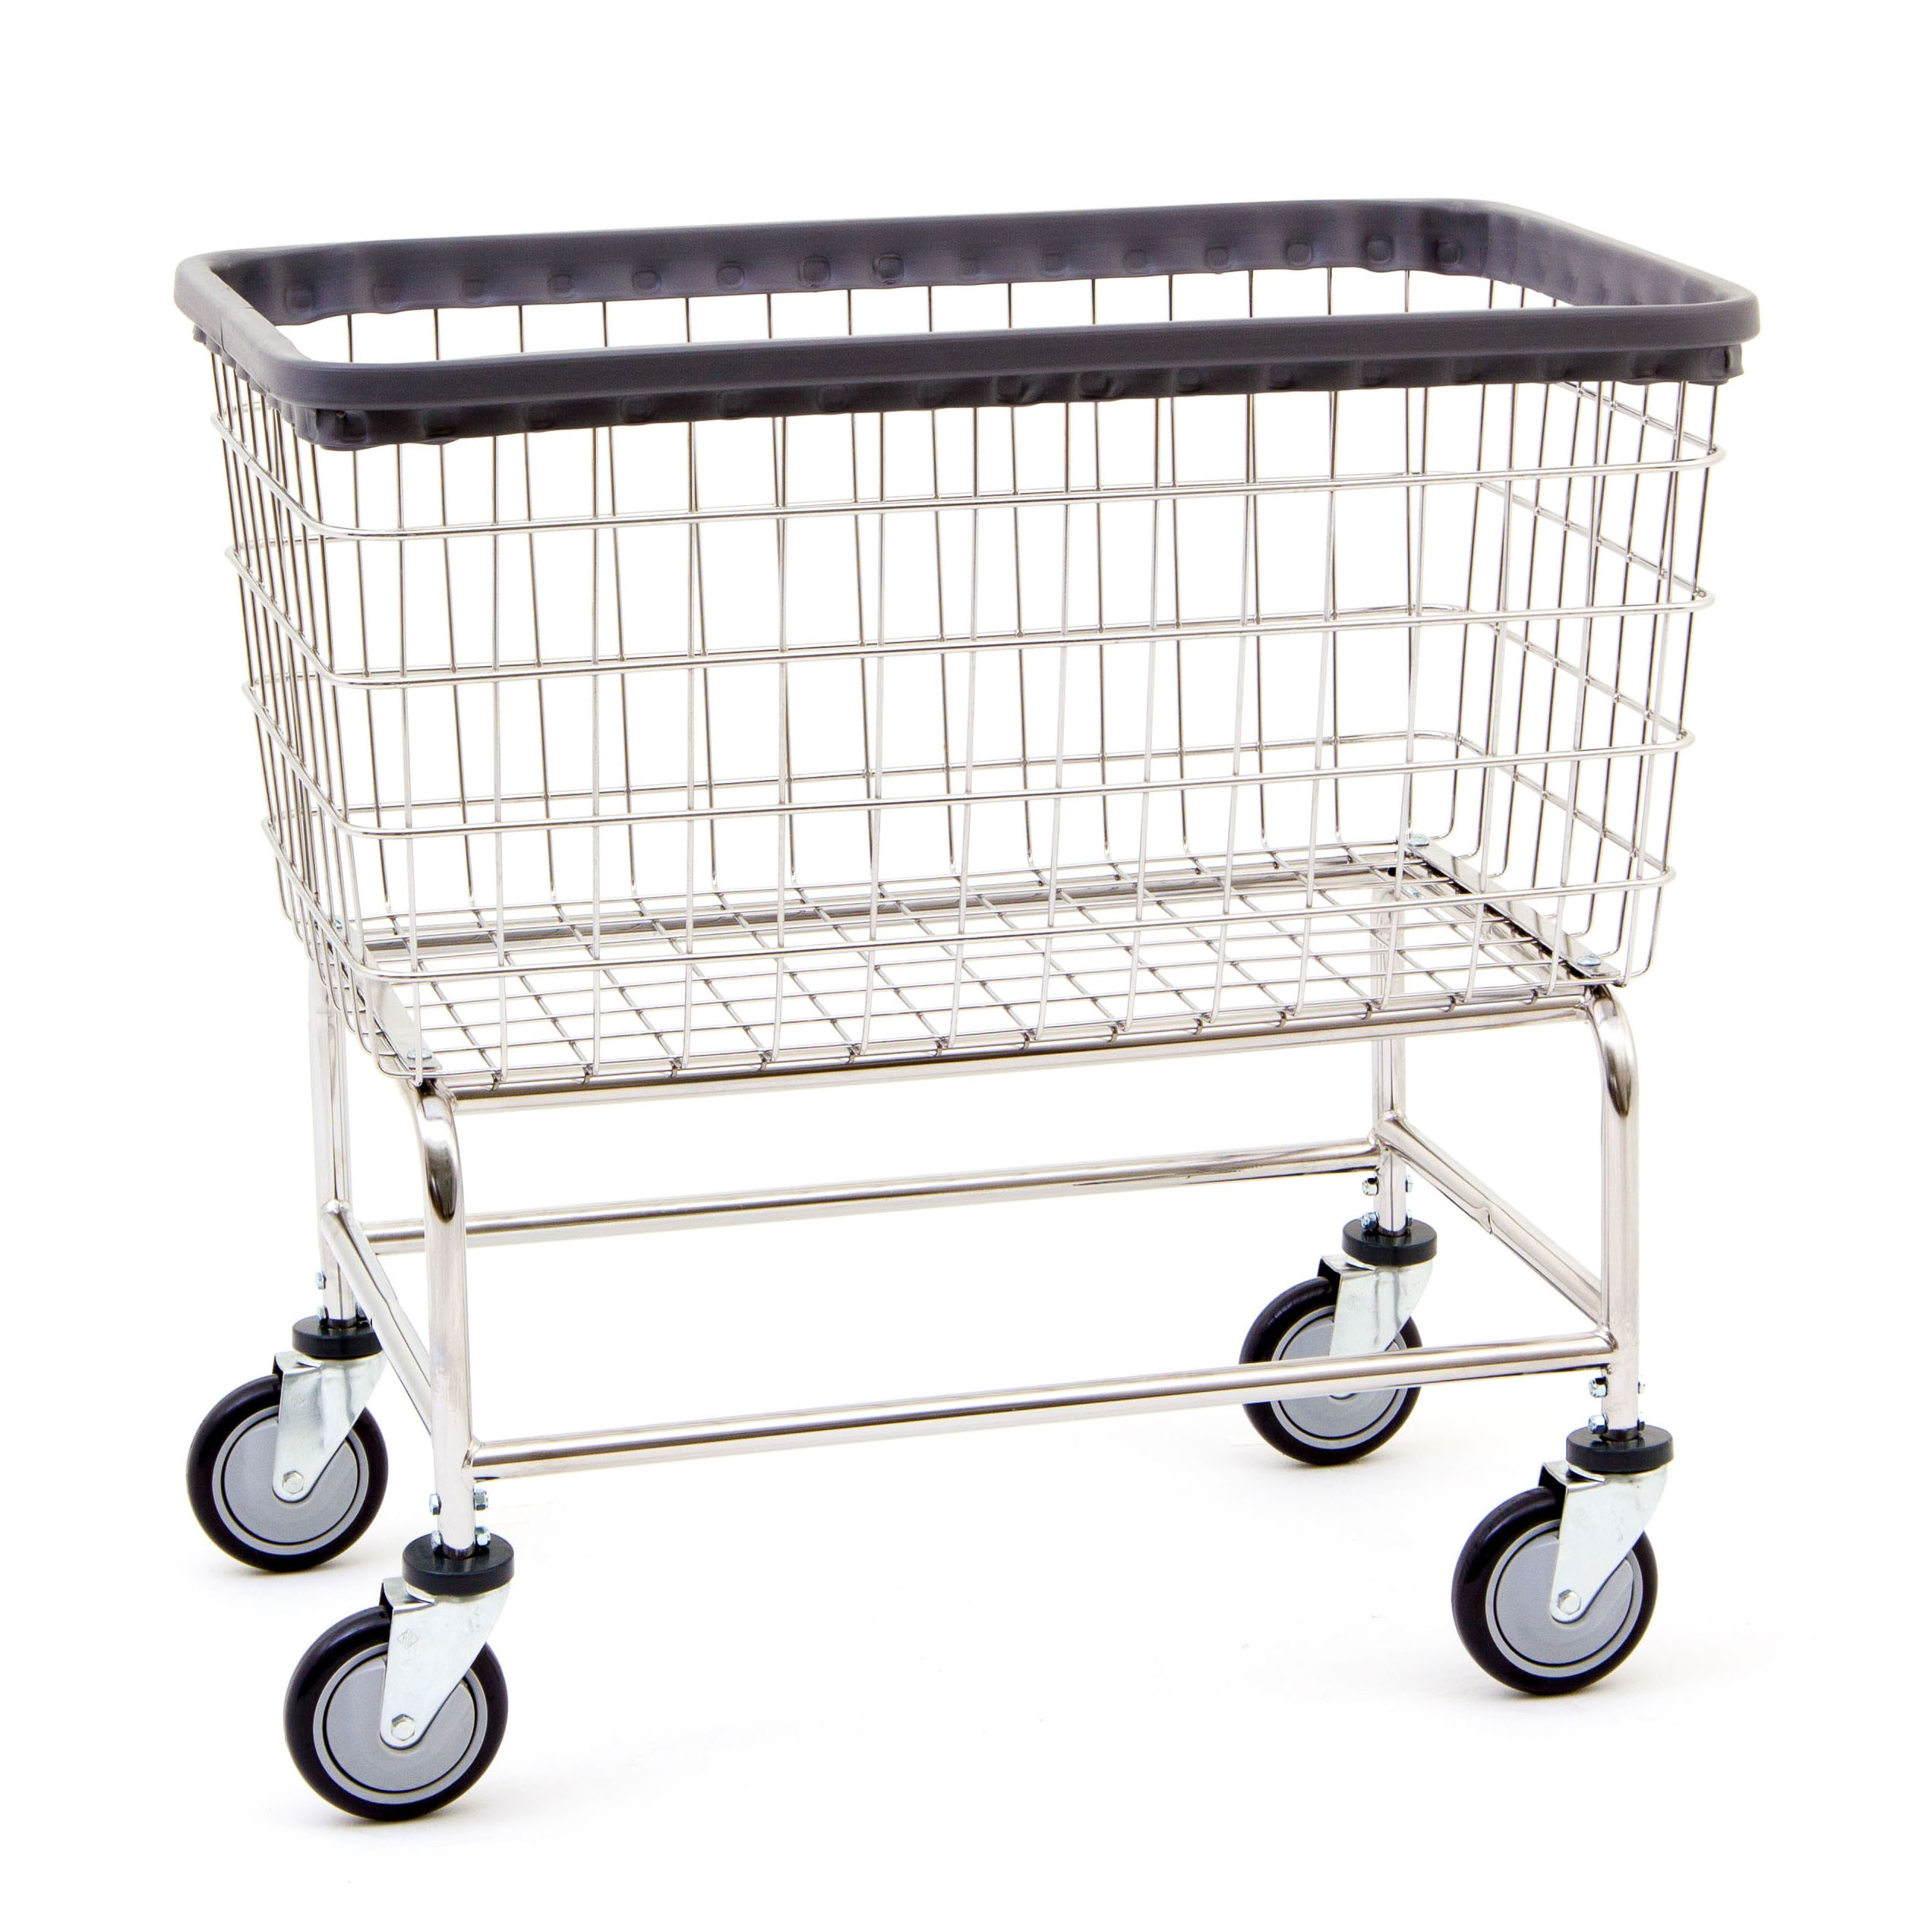 bc textile innovations basket cart laundry basket on wheels rolling shopping cart wire. Black Bedroom Furniture Sets. Home Design Ideas